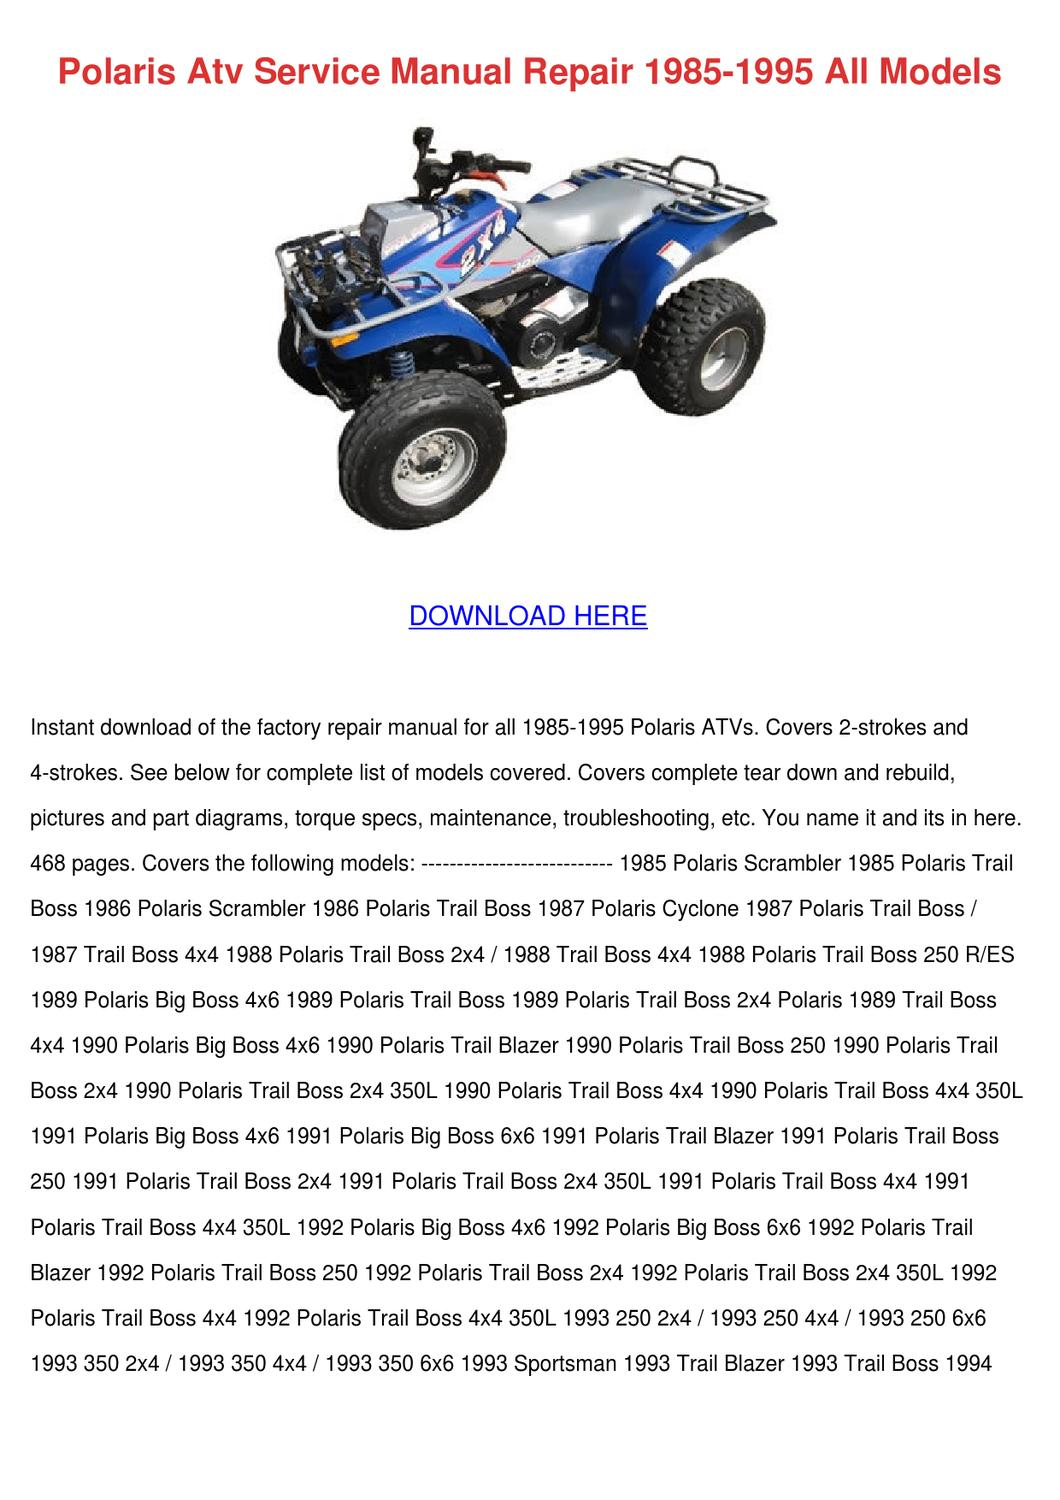 polaris atv service manual repair 1985 1995 a by luci jacobi issuu rh issuu com 1993 Polaris Trail Boss 350 1990 Polaris Trail Boss 350